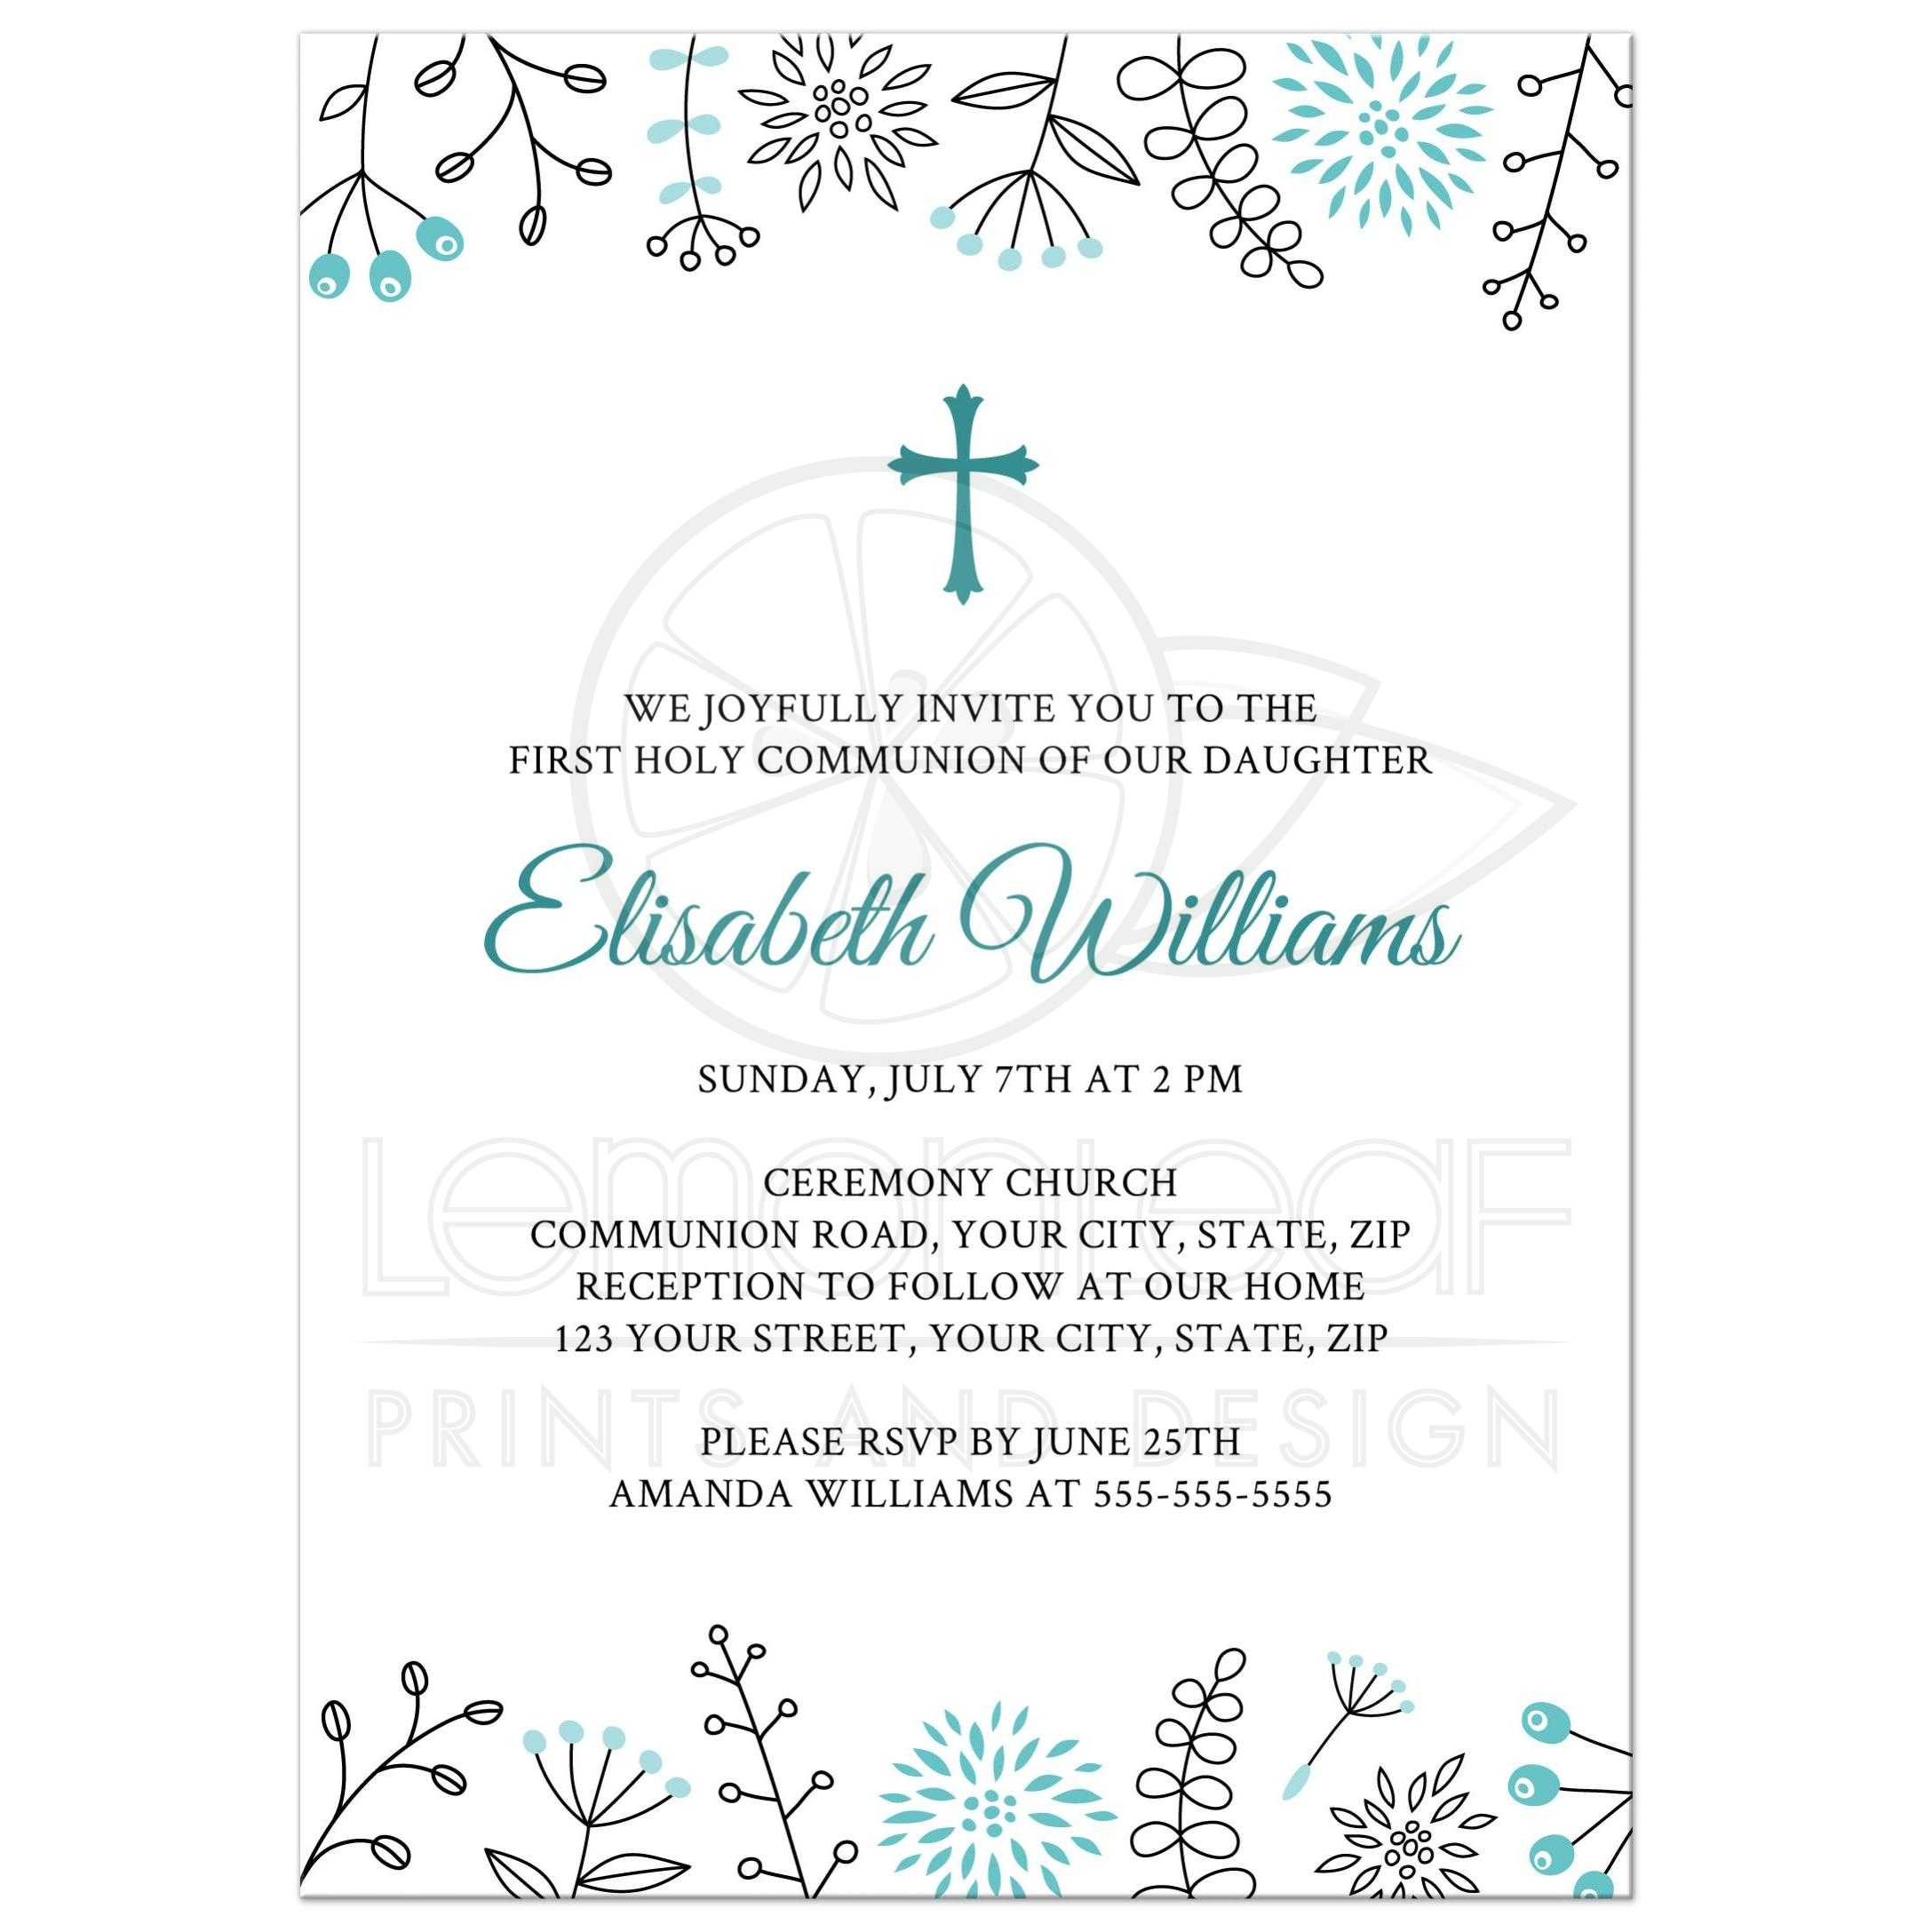 First Holy Communion/Confirmation invitation with blue flower border